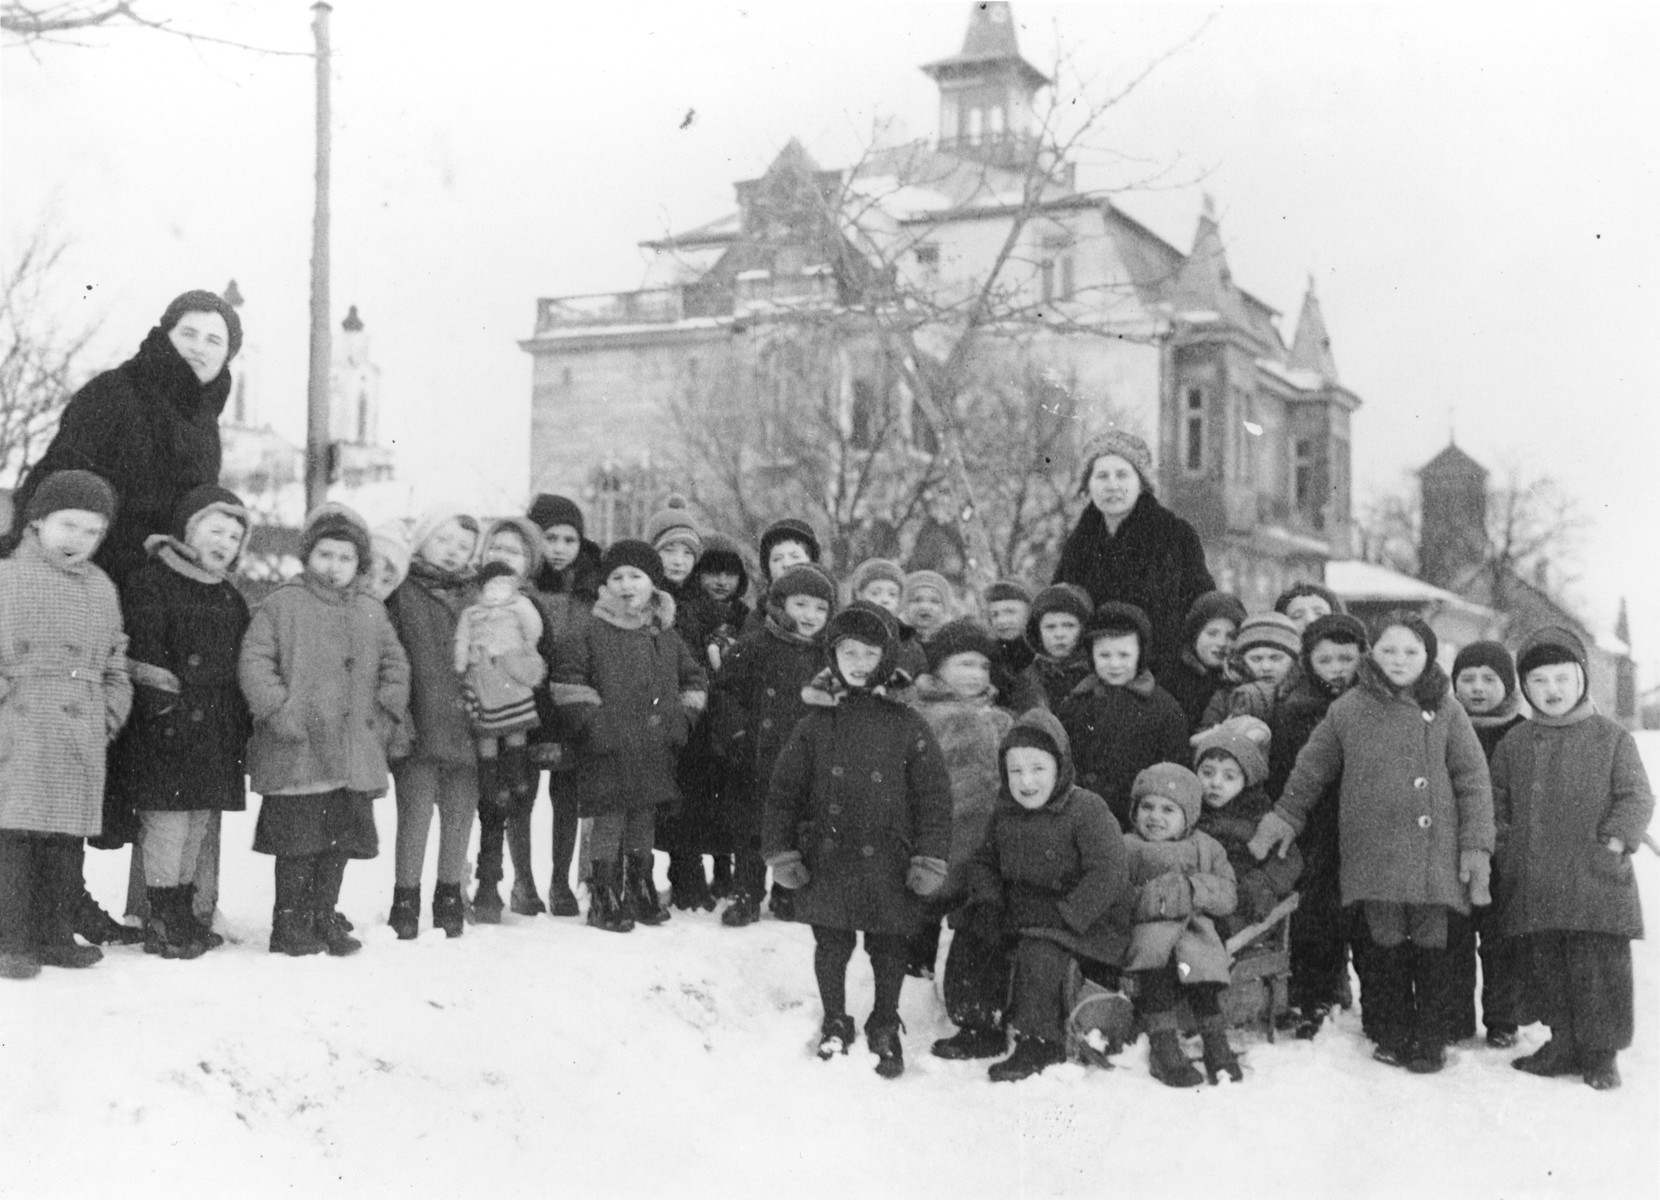 Children from the Jewish kindergarten (located at 9 Mapu Street) in Kovno, Lithuania, pose outside in the snow.